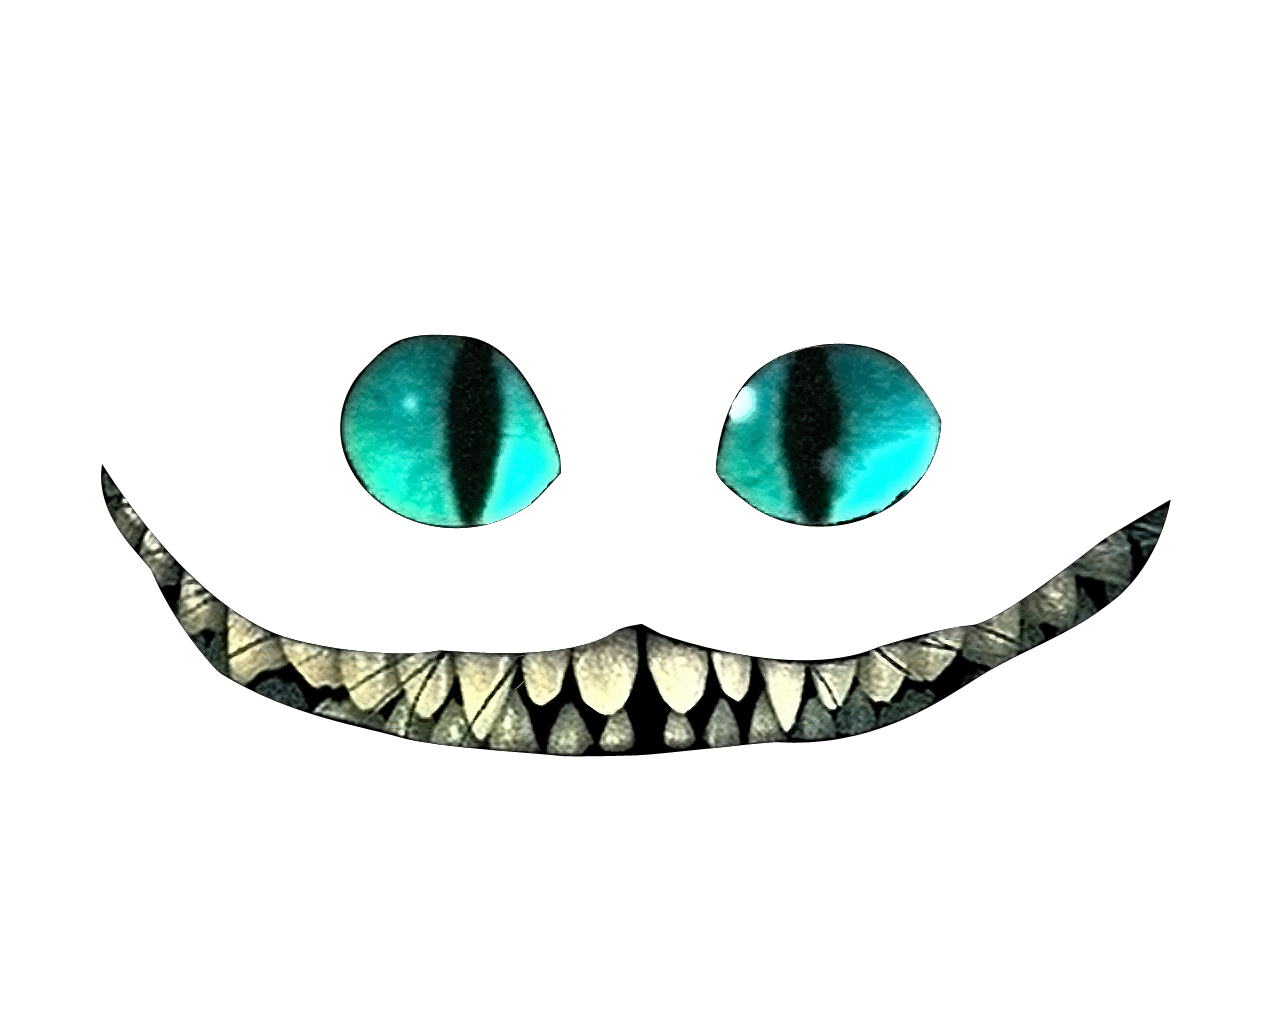 Cheshire cat smile png. Transparent hd photo mart